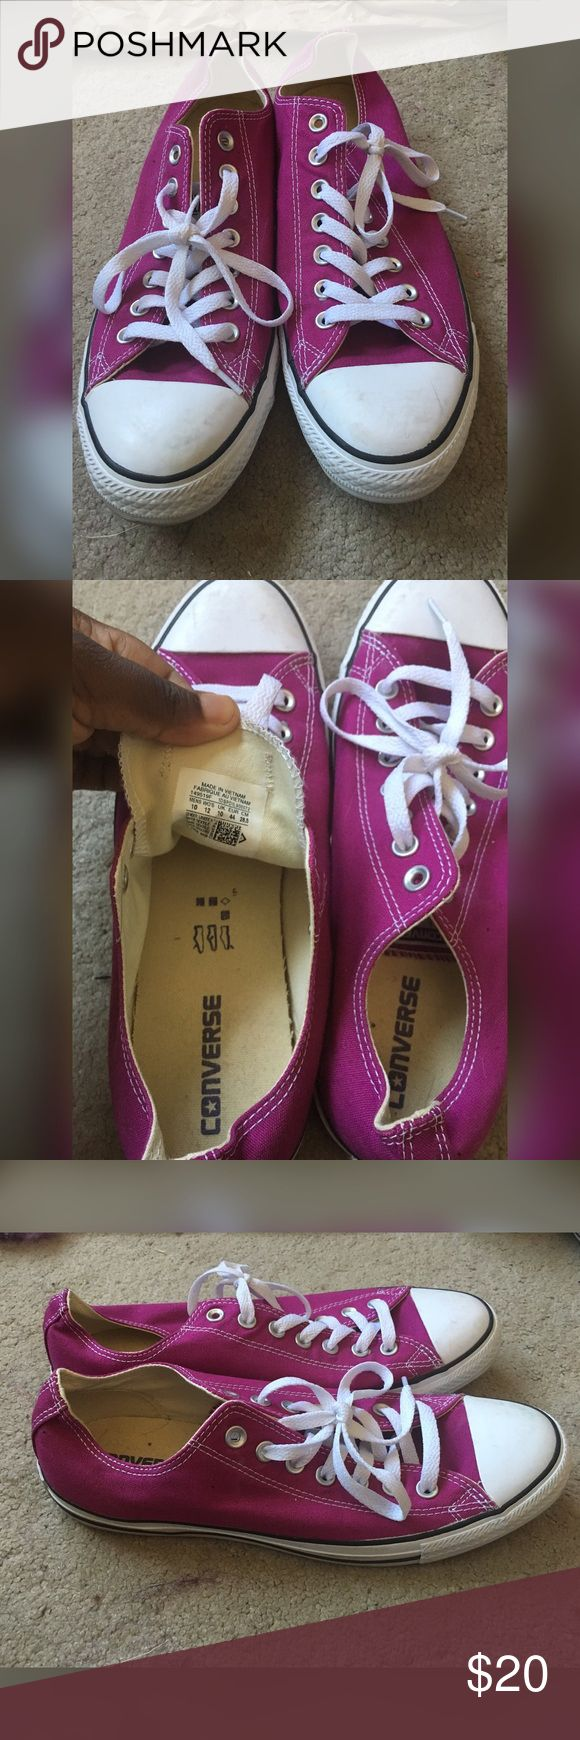 3 for $44 Converse all star womens 12 mens 10 Purchased from converse store these fuschia colored converse have been worn once still great condition couple scuffs can be wet wiped fit true to size lowest i can go is $19 to make $14 on the sale Converse Shoes Sneakers